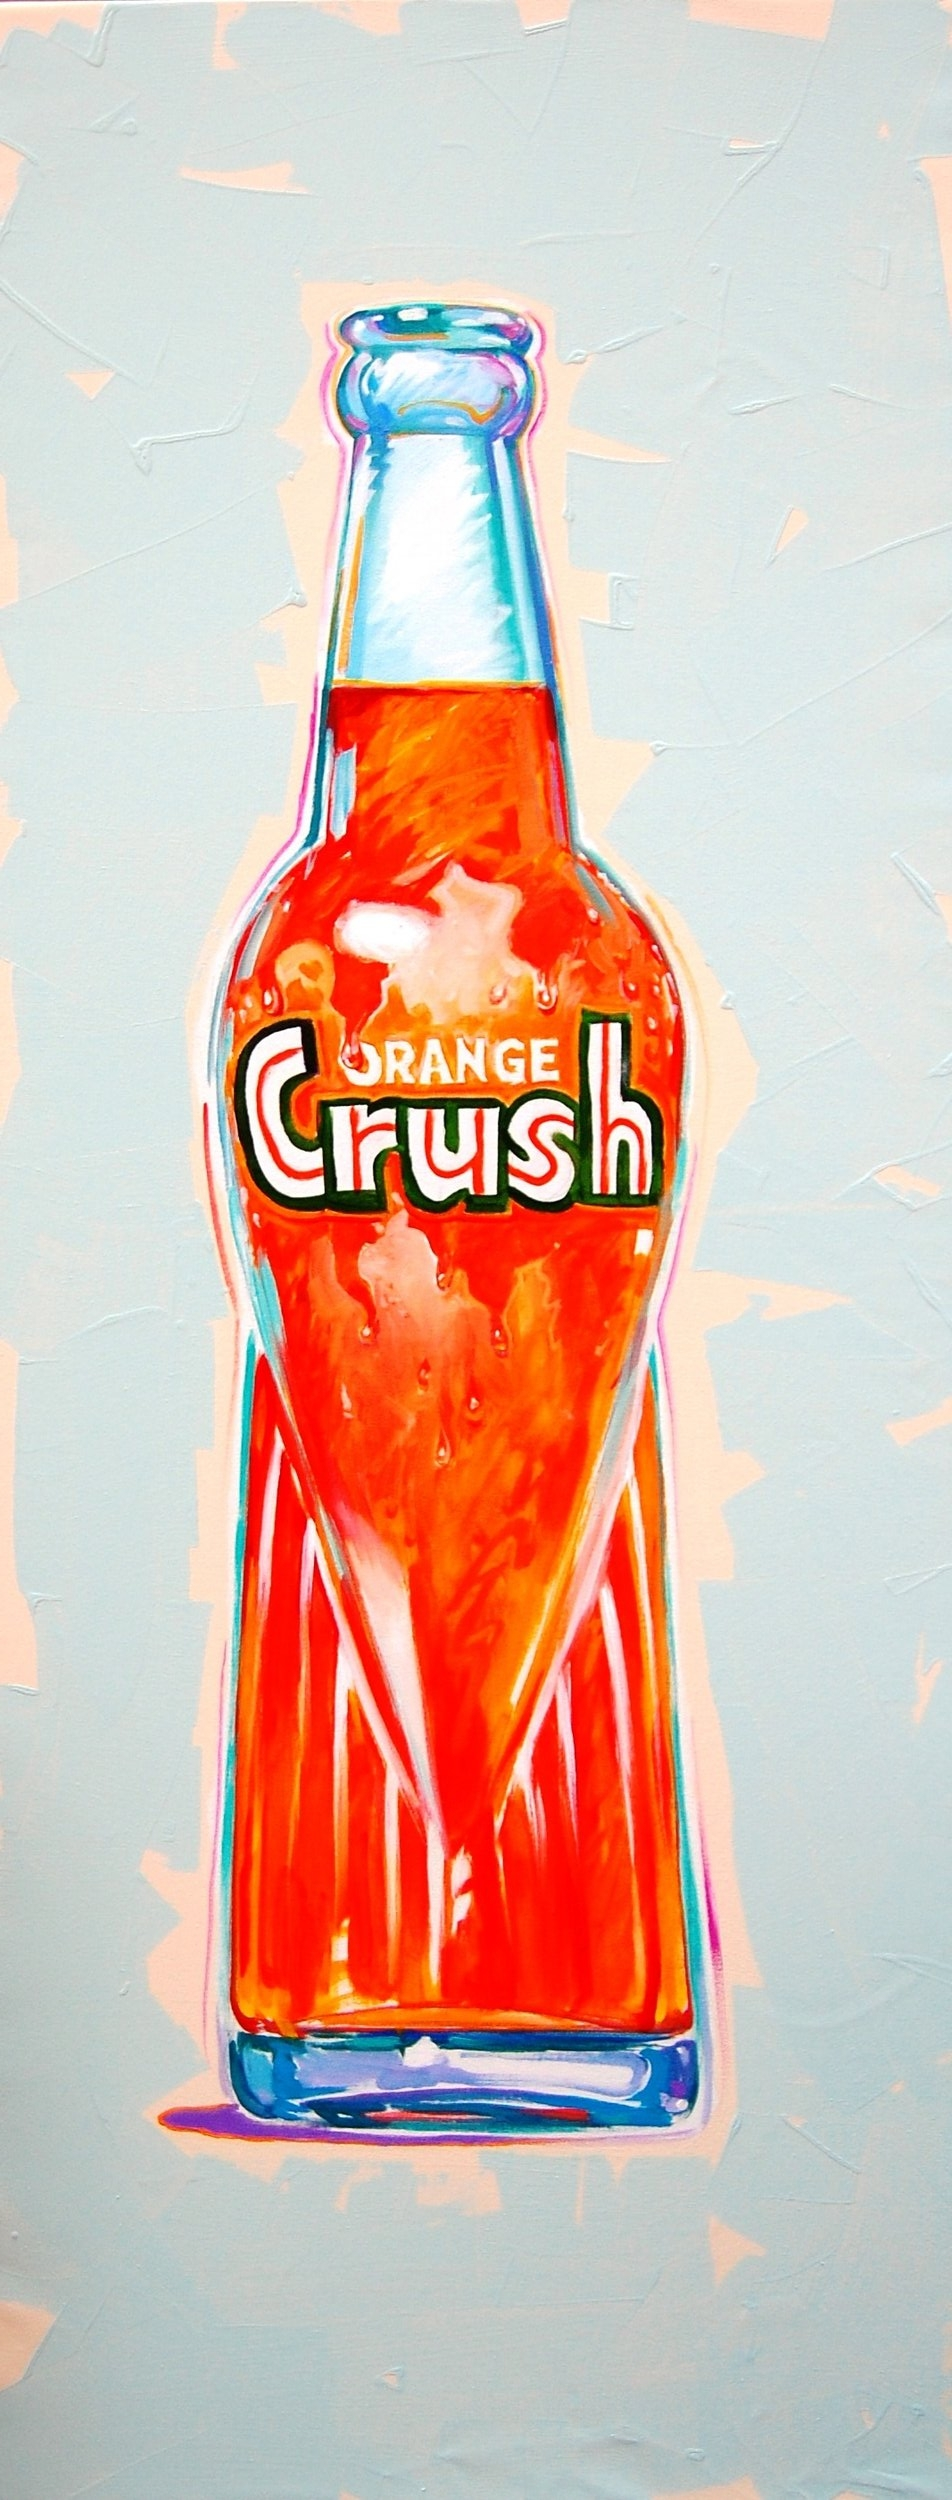 Orange crush - Tom Foty60 x 24    Acrylic on canvasSee more from this artist